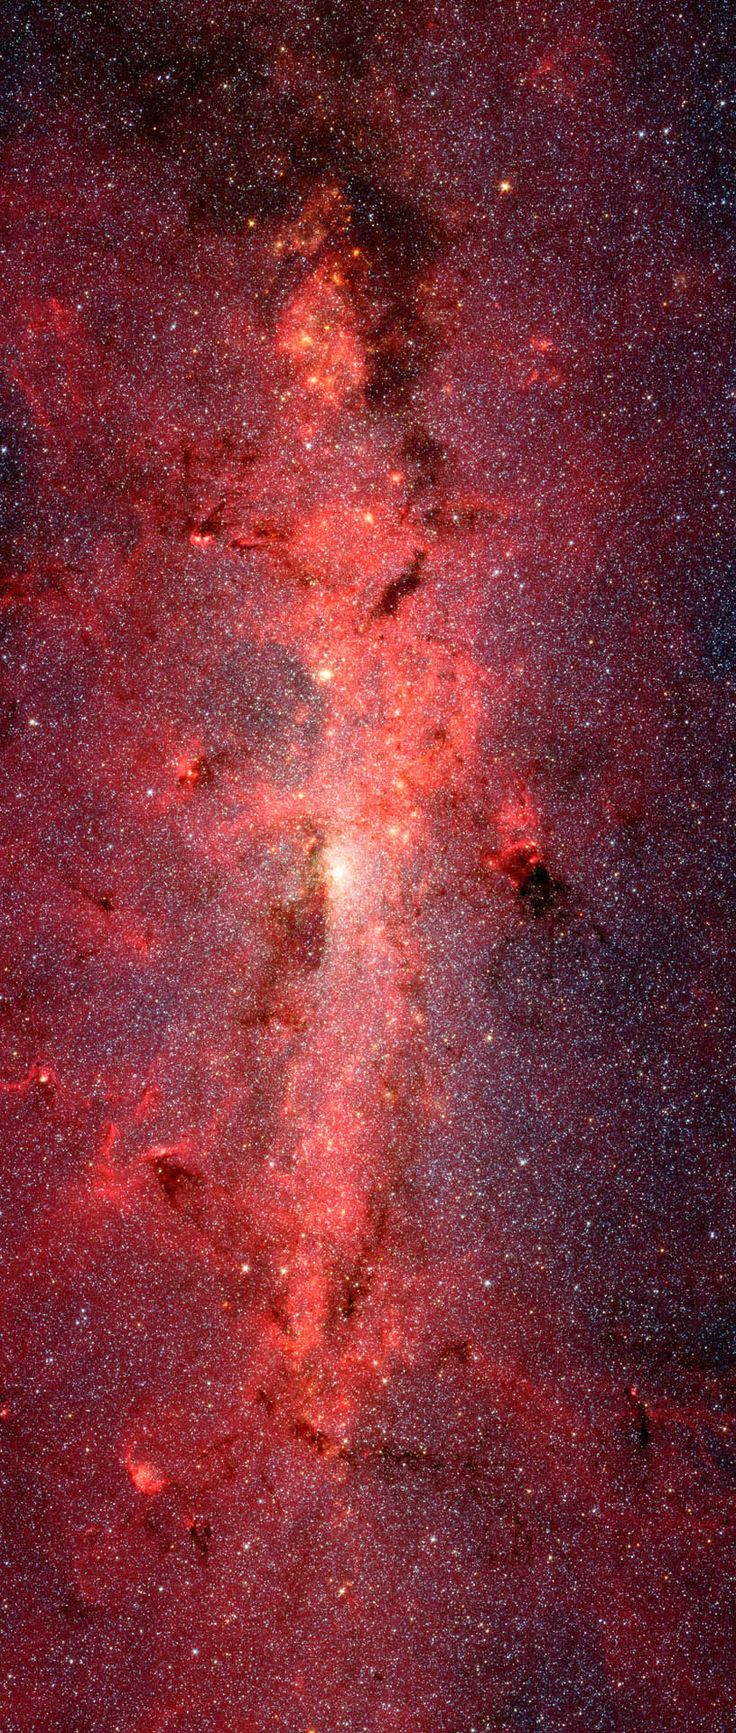 The Milky Way's Center seen in Infrared | This dazzling infrared image from NASA's Spitzer Space Telescope shows hundreds of thousands of stars crowded into the swirling core of our spiral Milky Way galaxy. In visible-light pictures, this region cannot be seen at all because dust lying between Earth and the galactic center blocks our view.